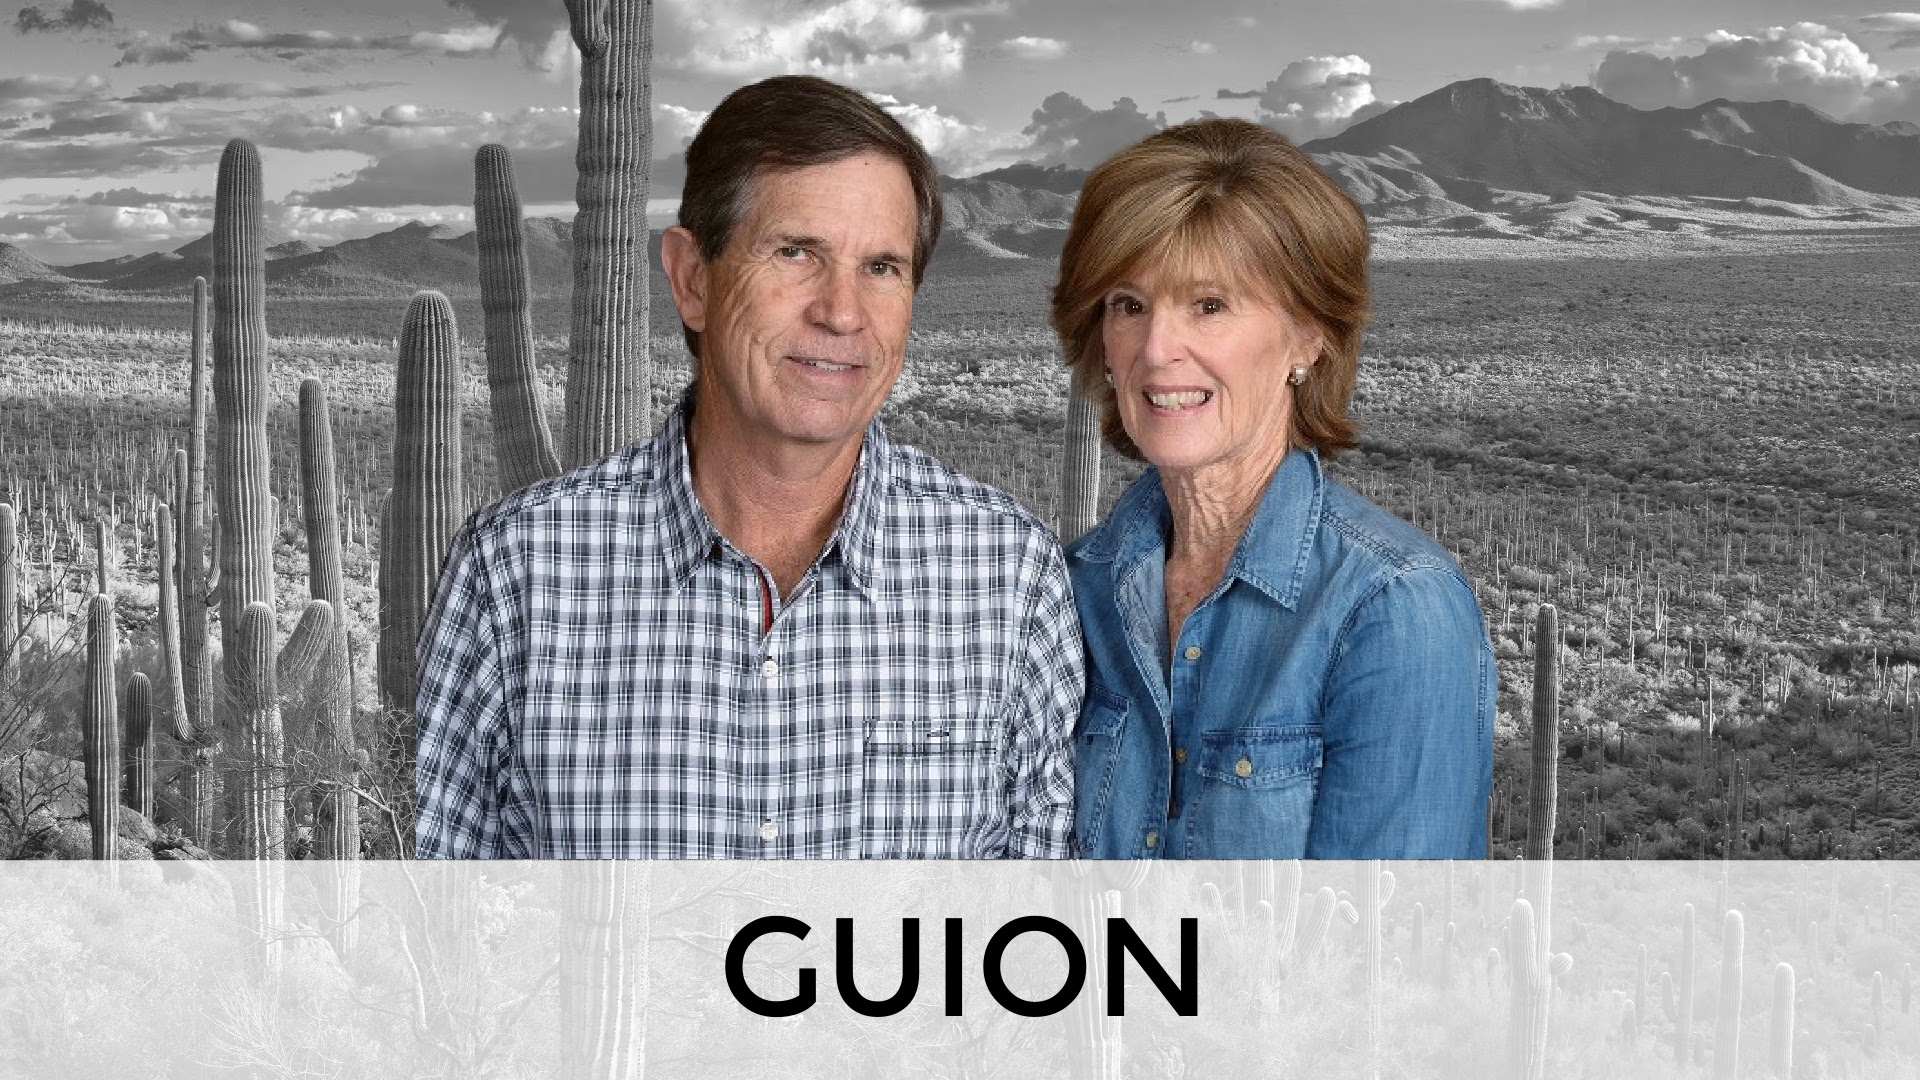 Guion Community Group